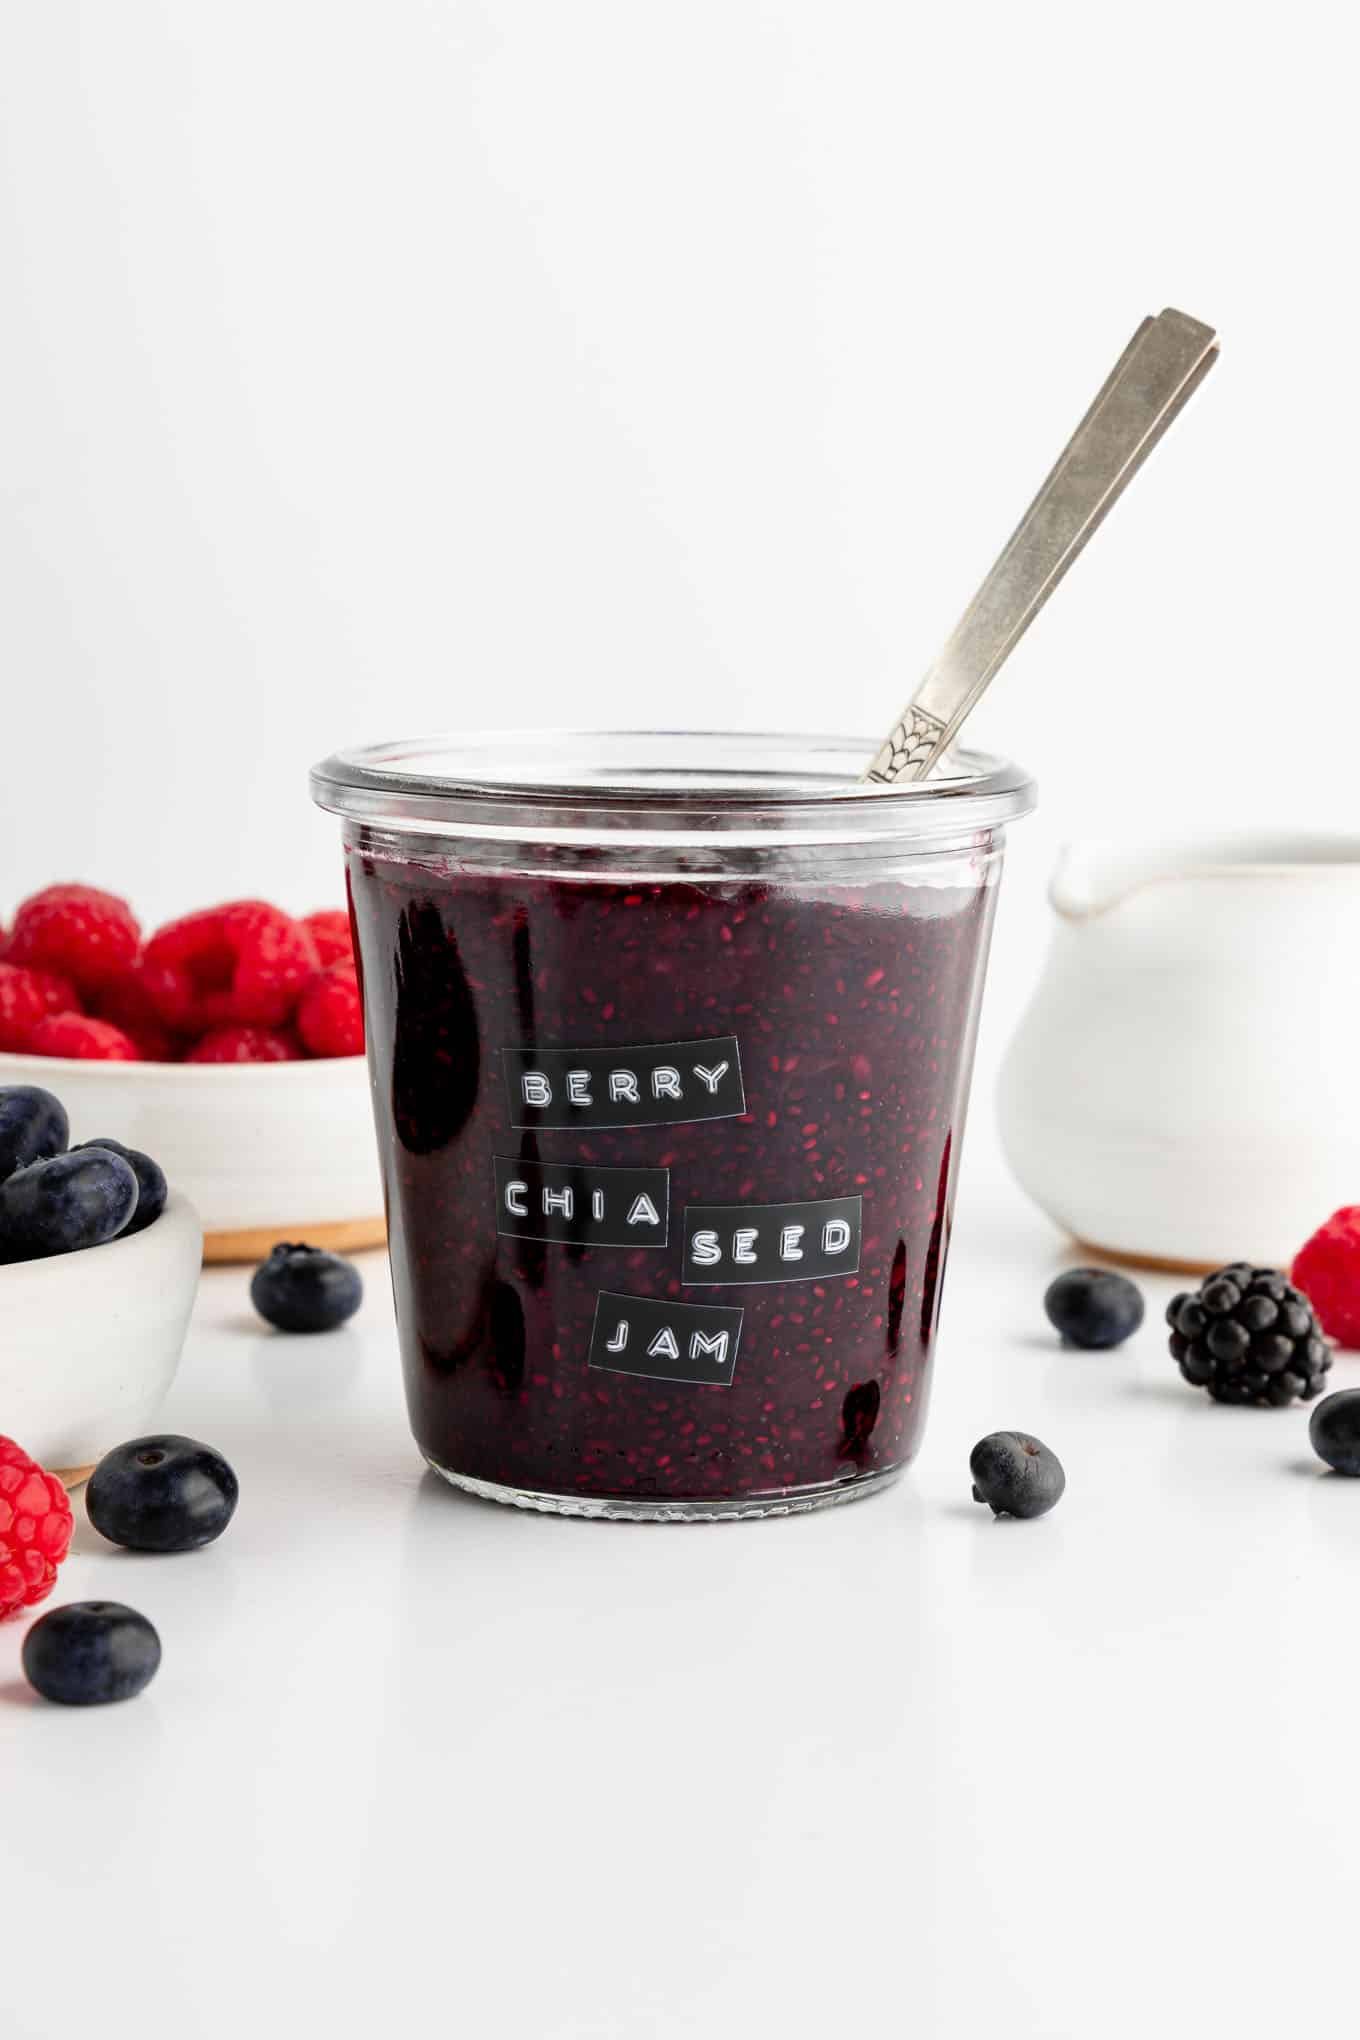 a weck jar filled with berry chia seed jam beside bowls filled with mixed berries